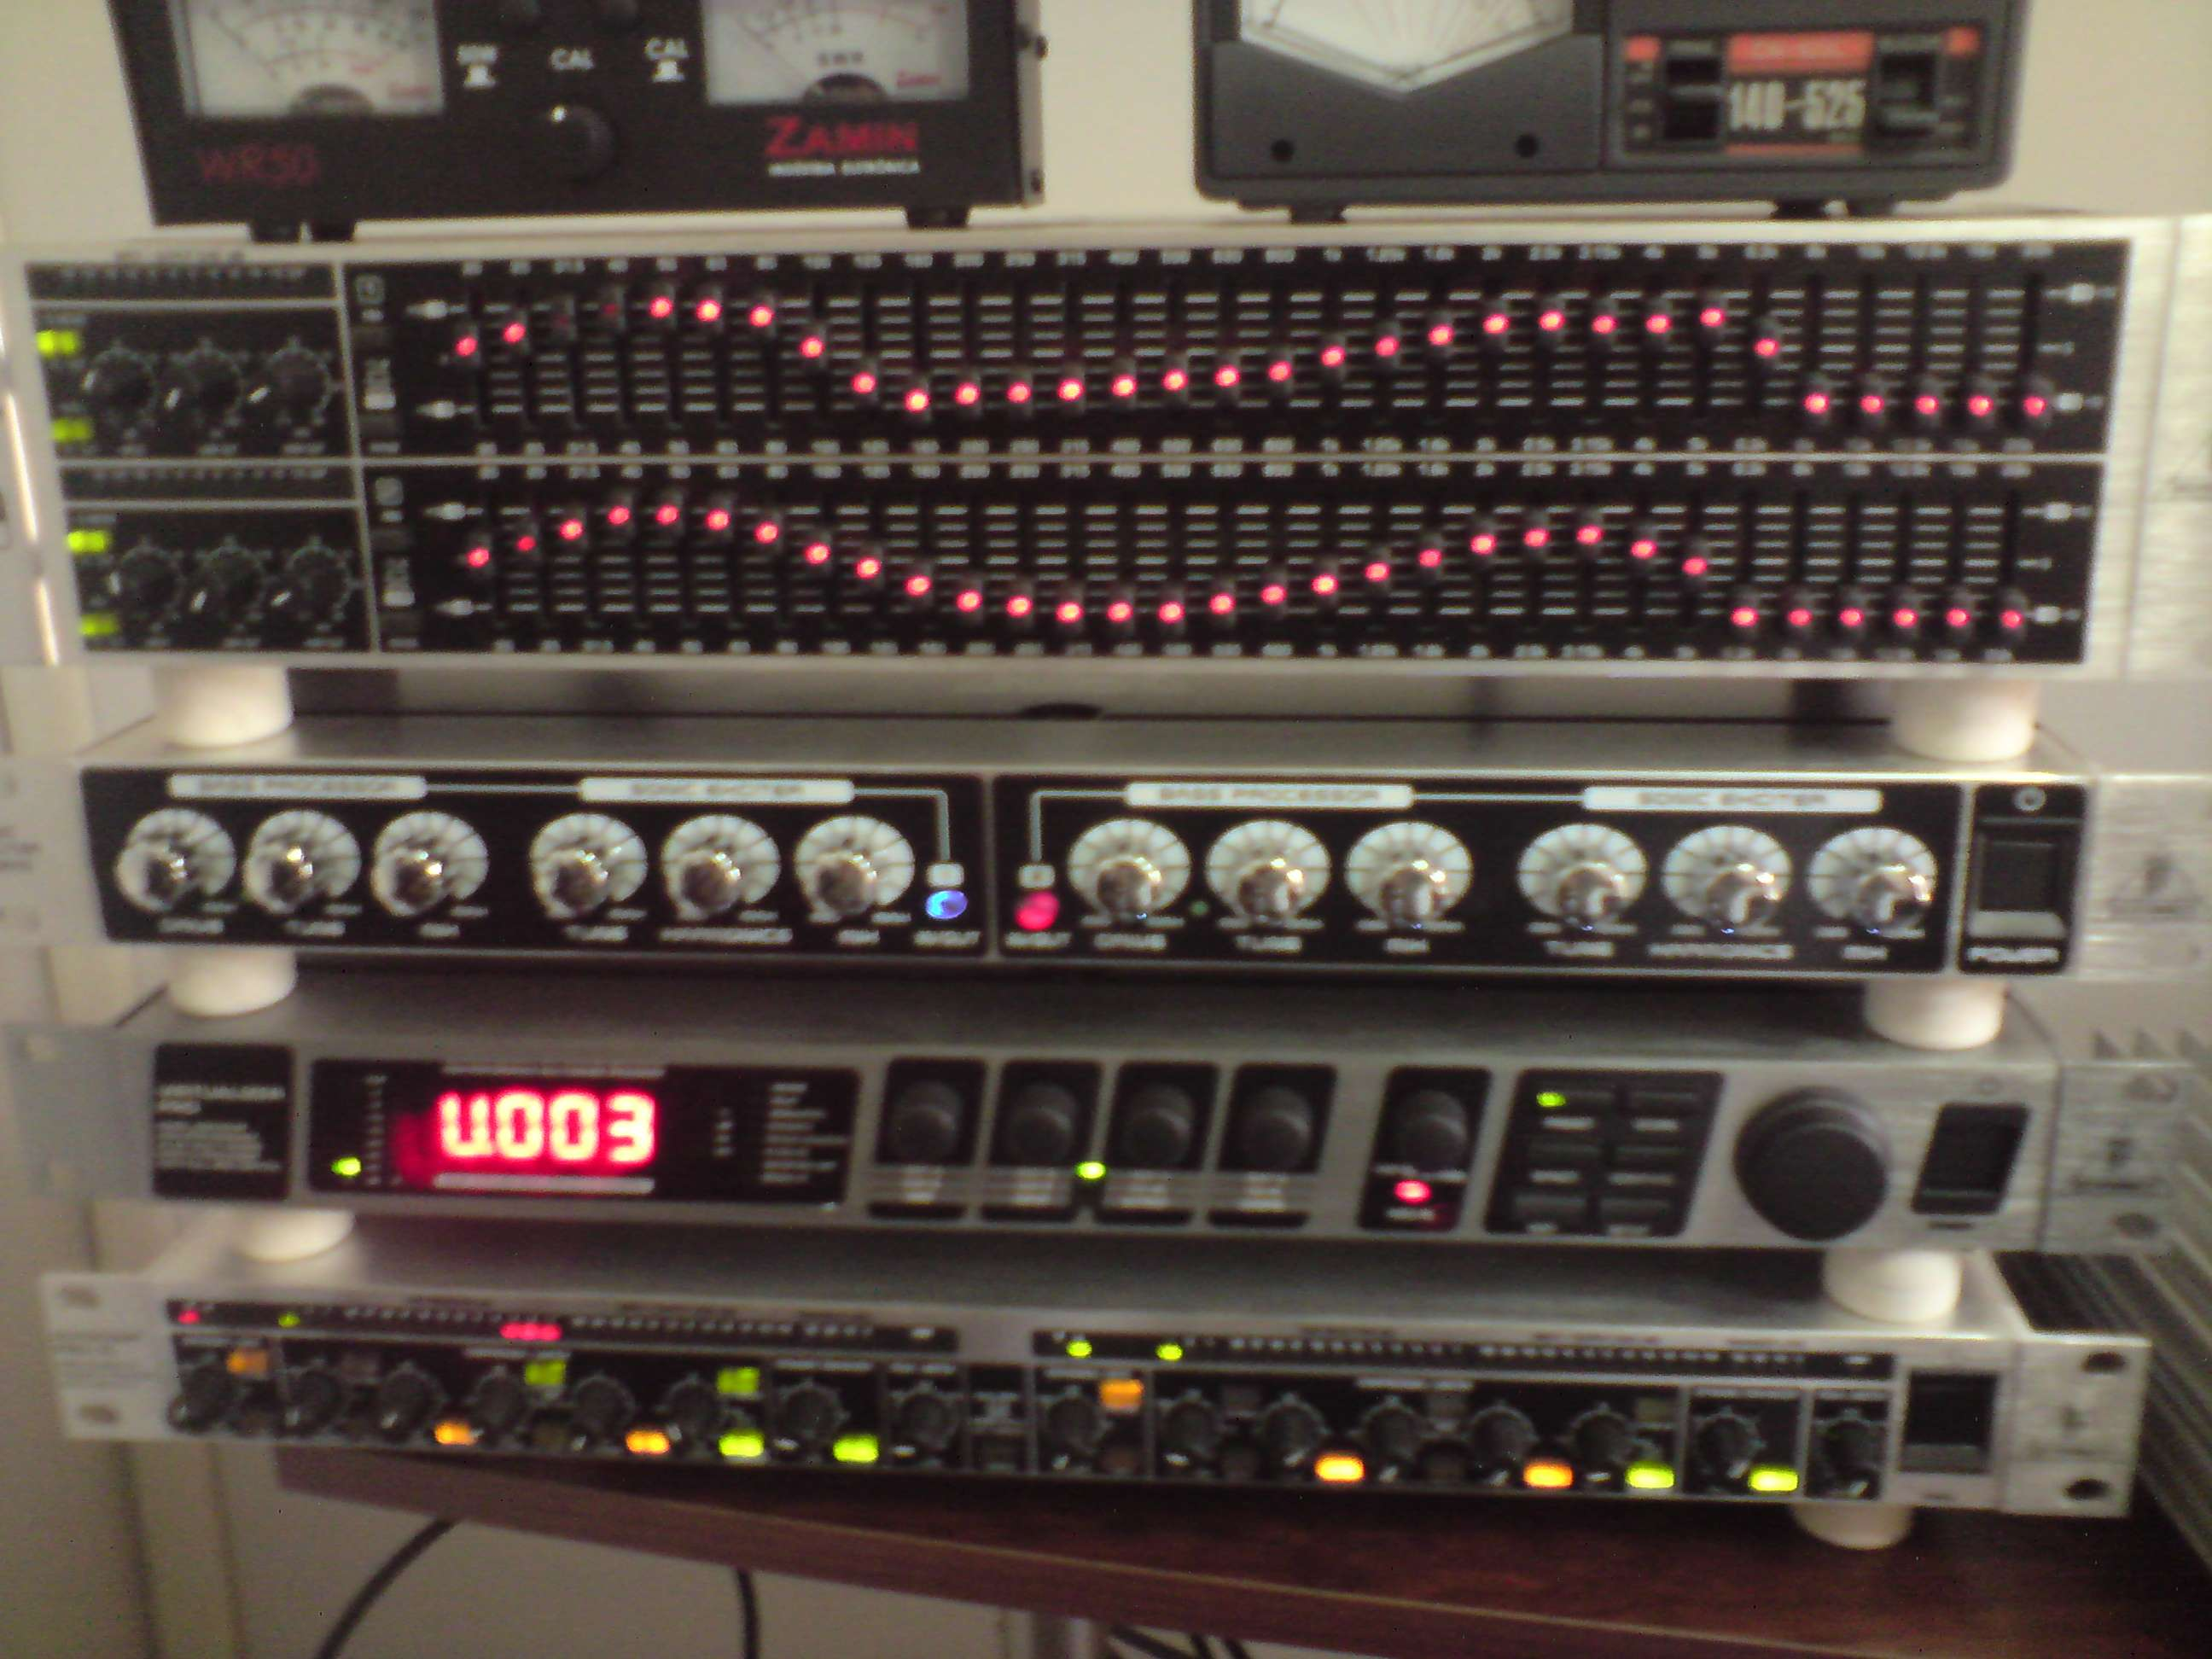 Here is the Rack that makes the Voodoo Audio!!!